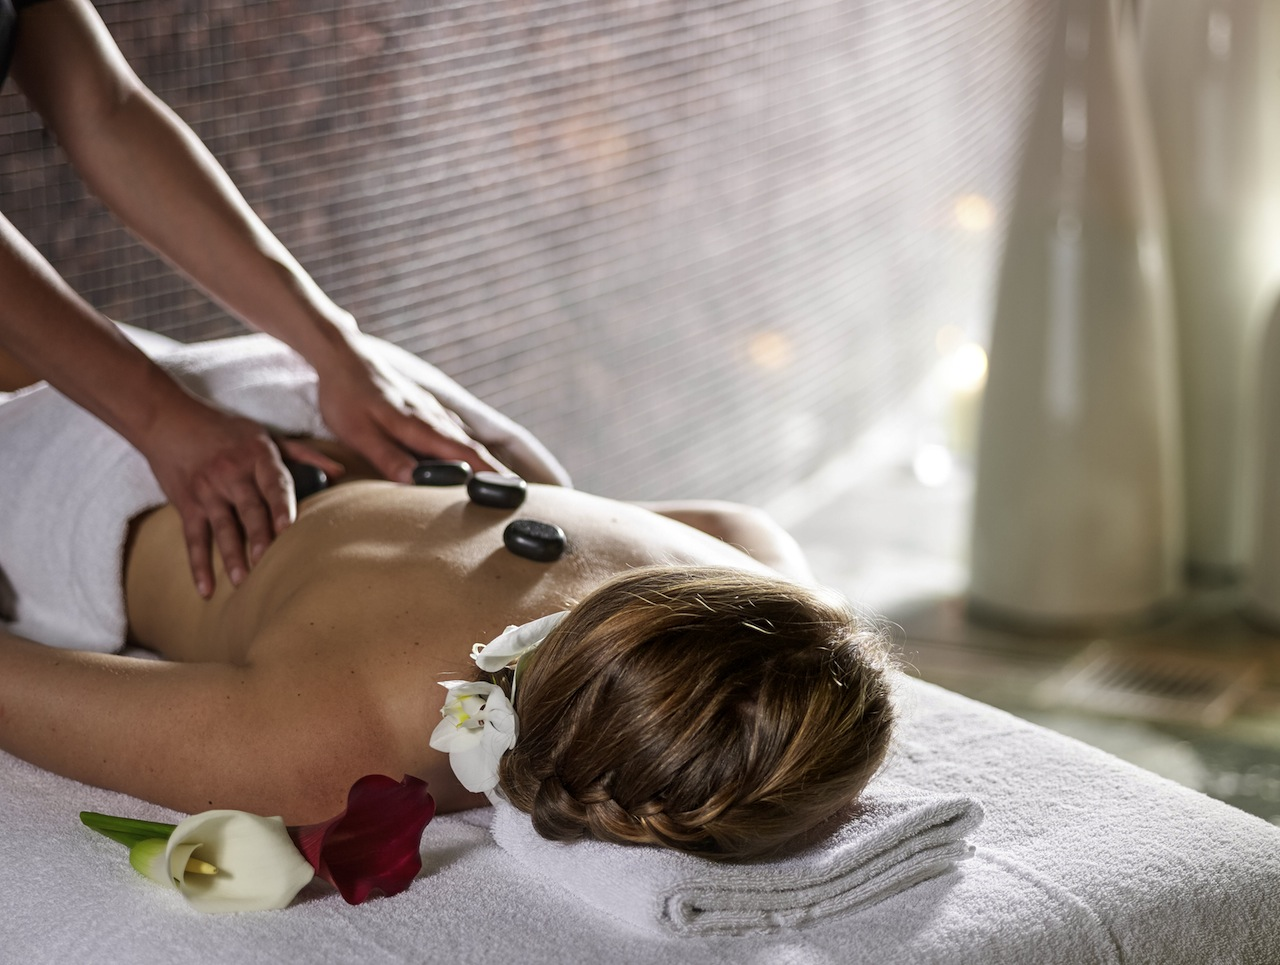 Ladies Deluxe in So Spa / © Sofitel Munich Bayerpost